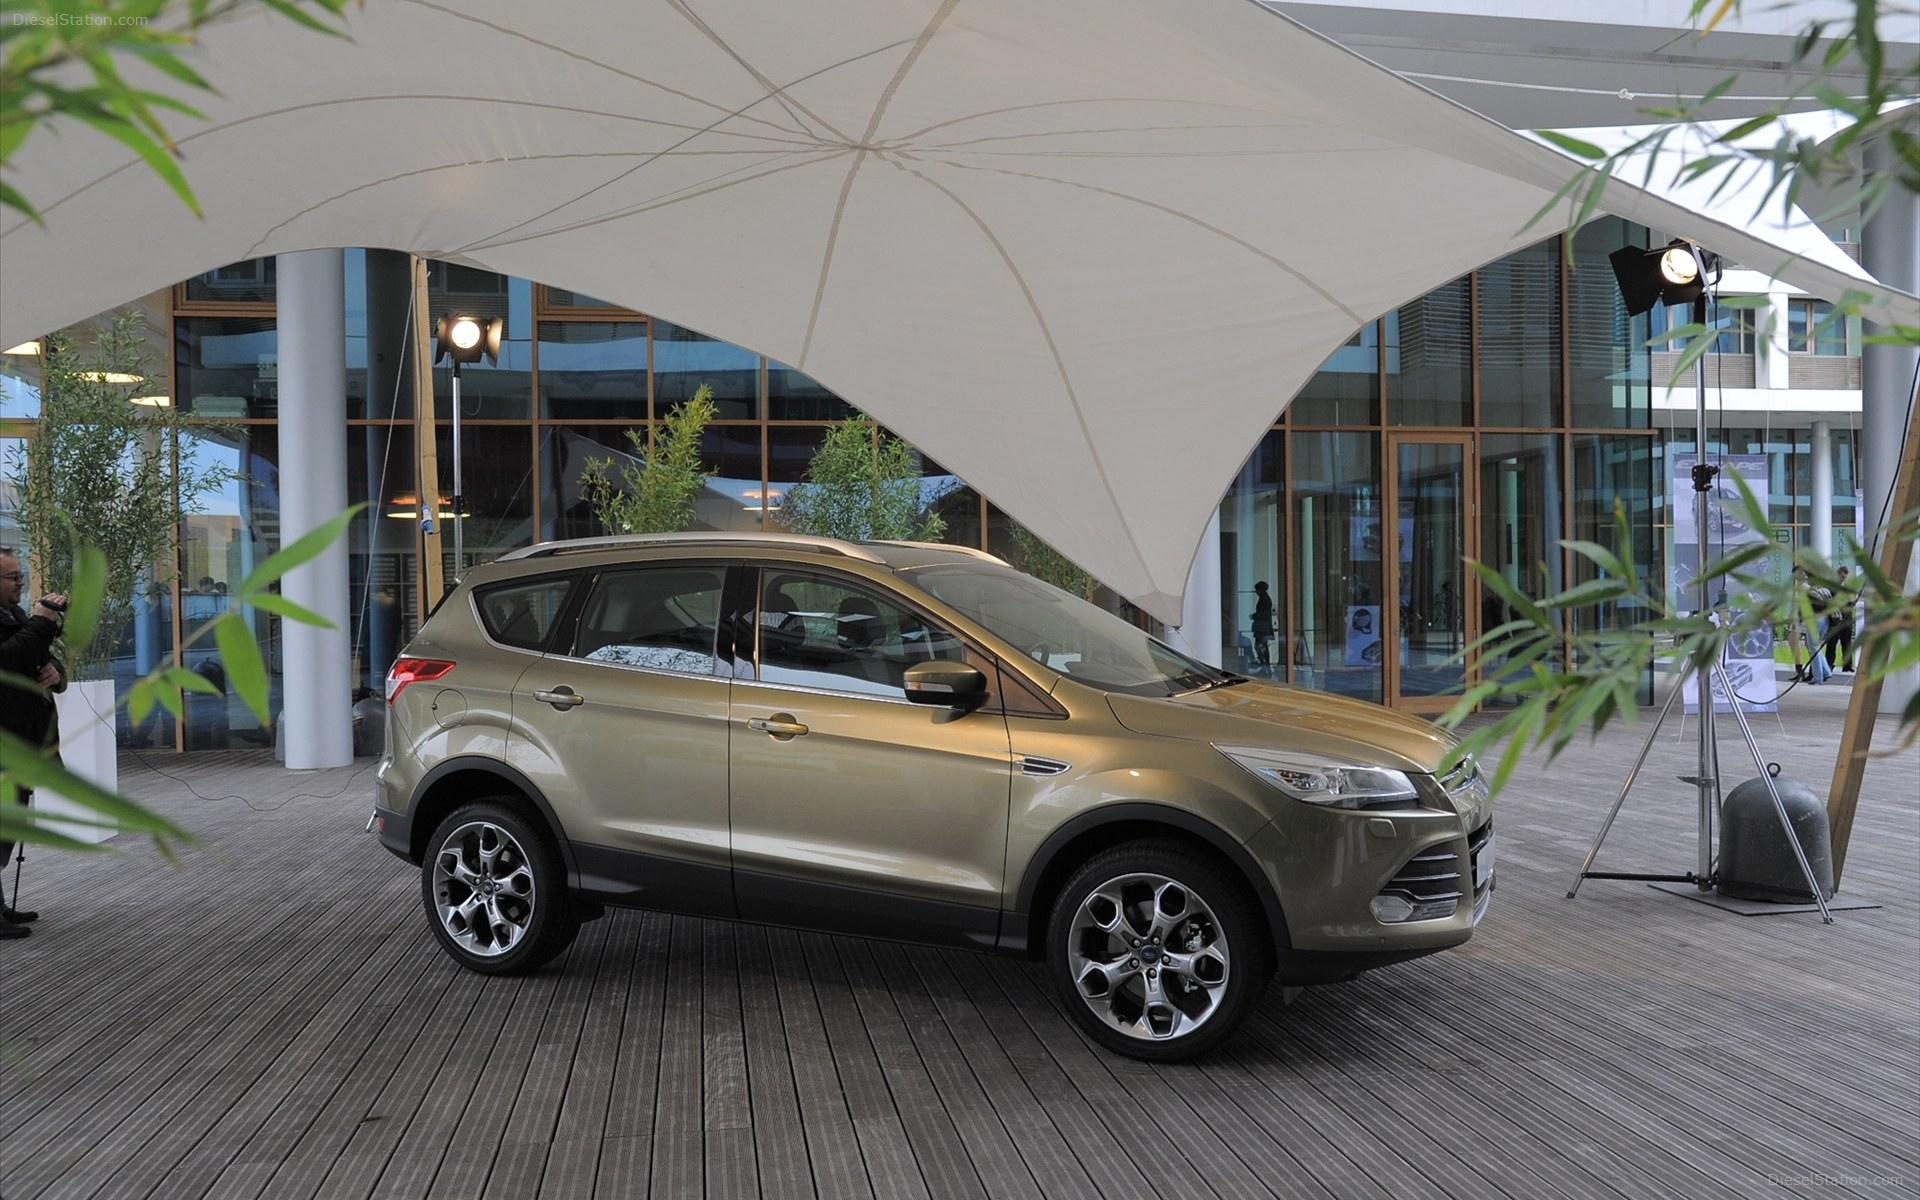 Ford Kuga 2012 Widescreen Exotic Car Wallpaper #03 of 8 : Diesel Station